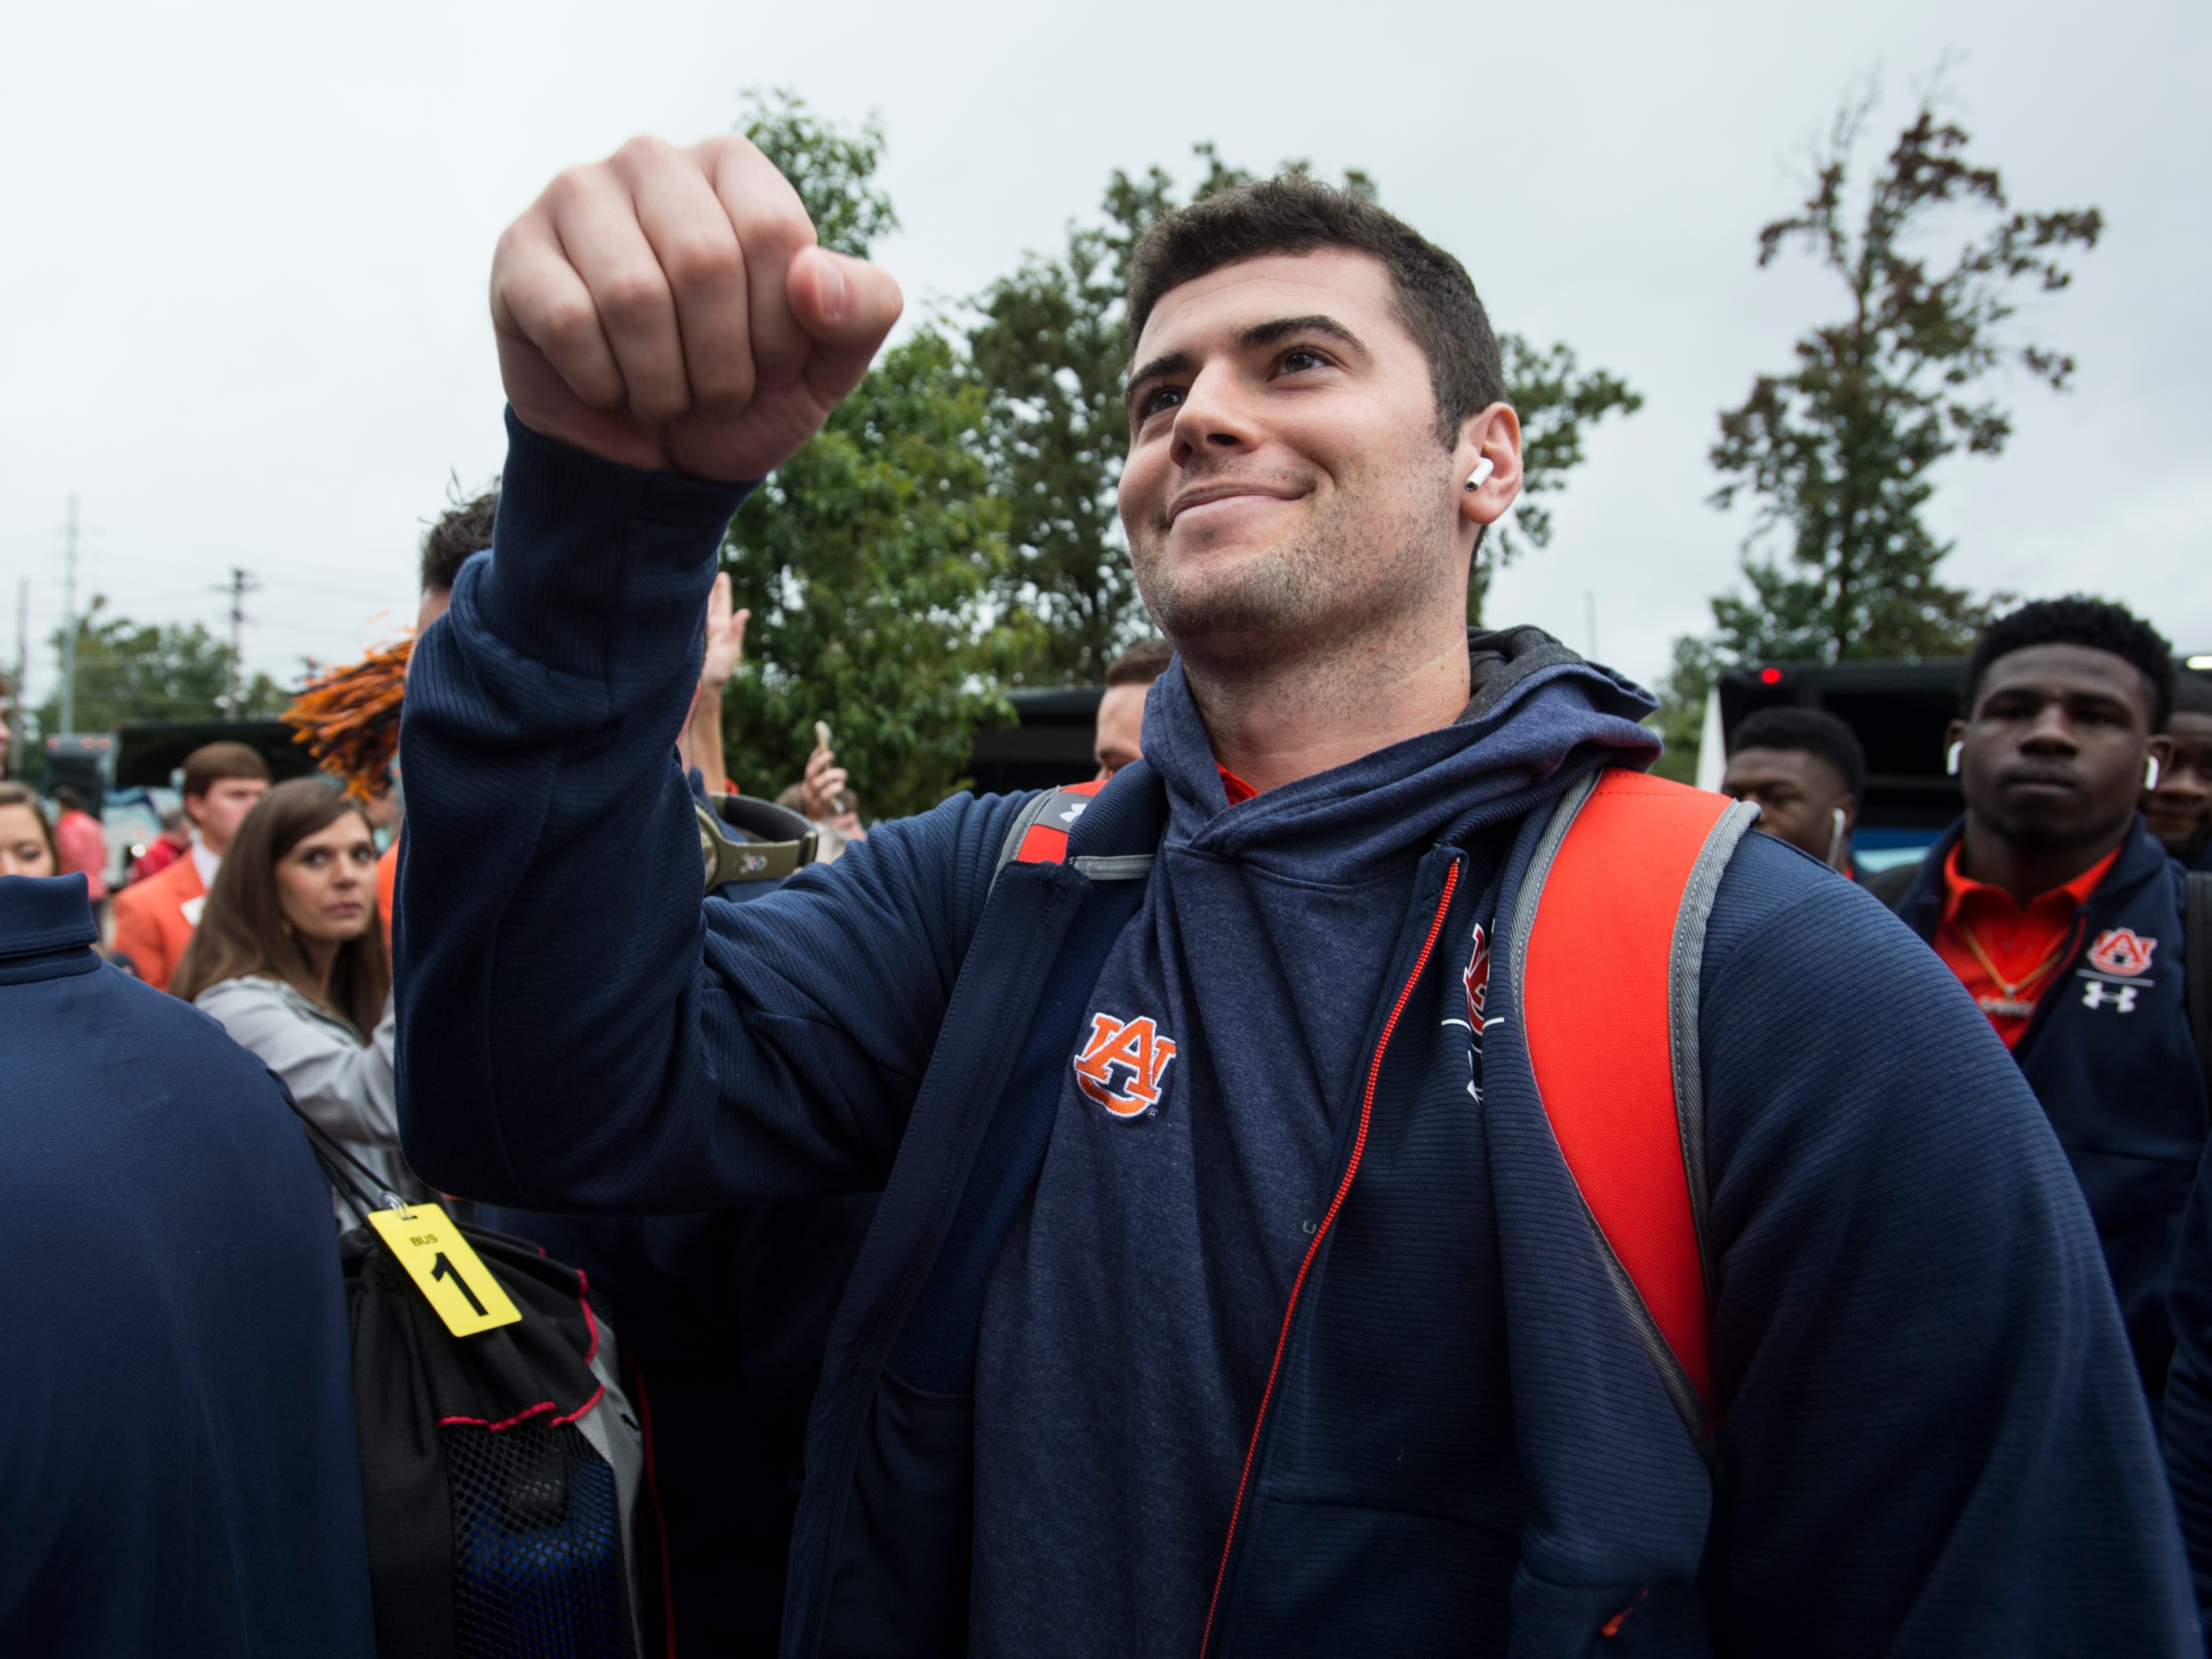 Auburn's Jarrett Stidham (8) fist bumps a fan during the Tiger Walk at Vaught-Hemingway Stadium in Oxford, Miss., on Saturday, Oct. 20, 2018.